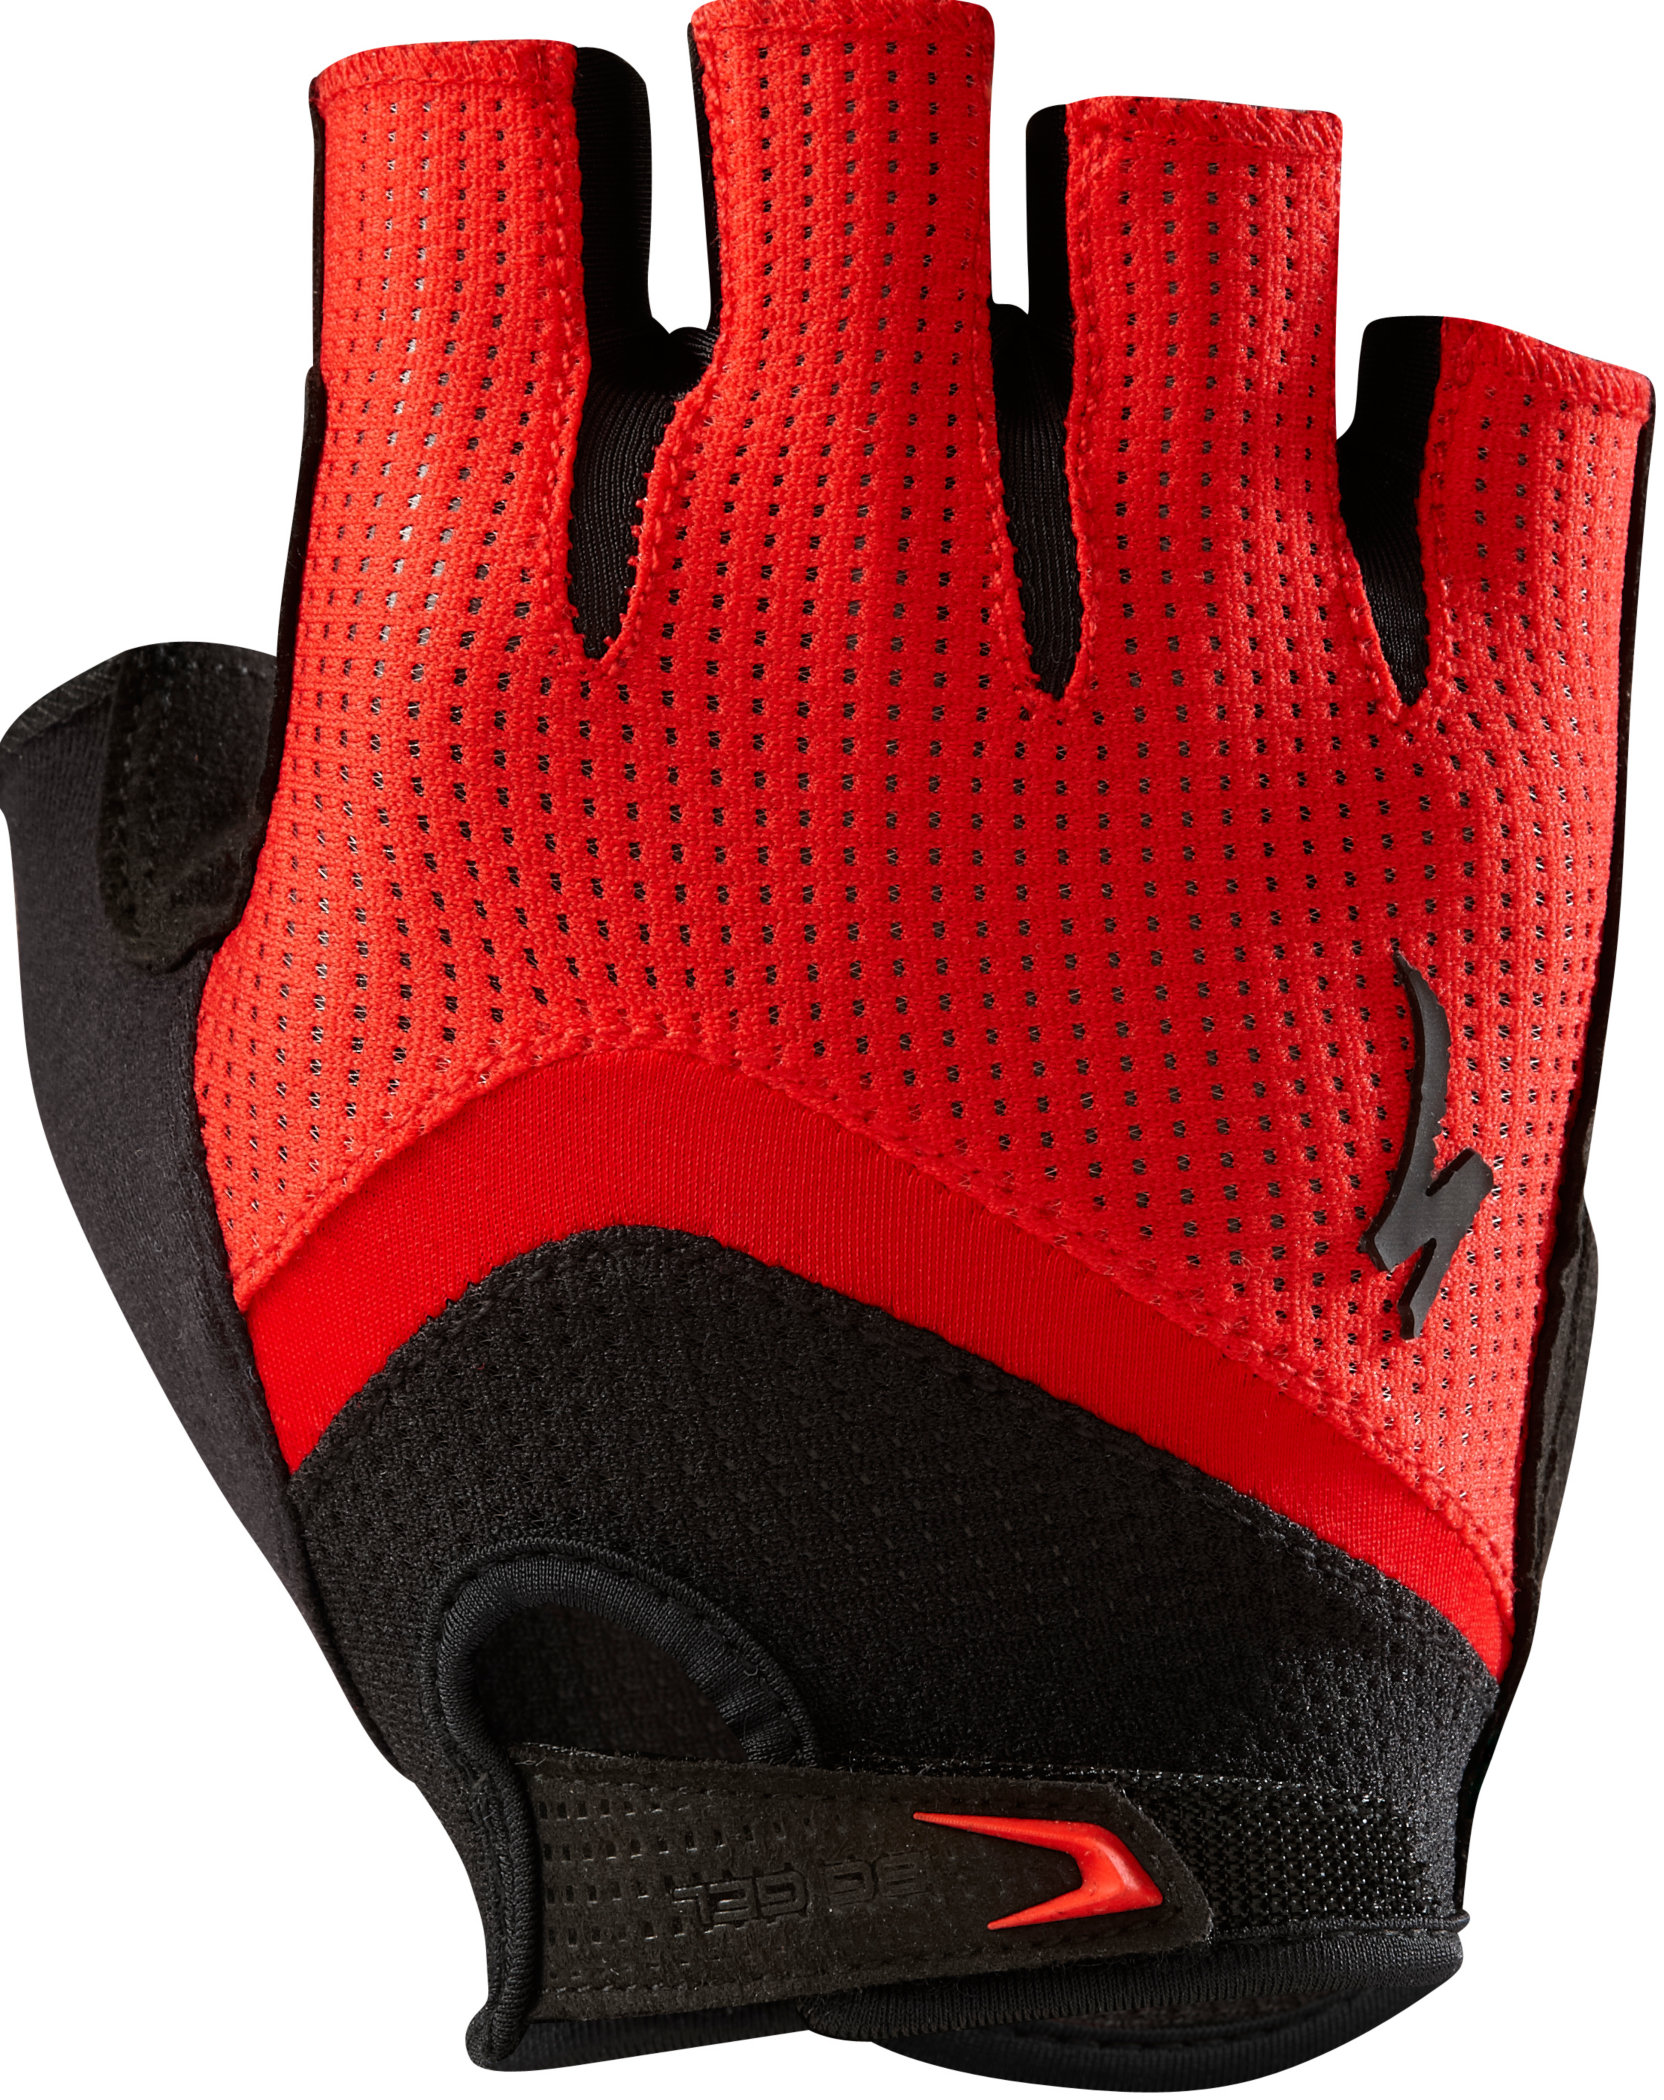 SPECIALIZED BG GEL GLOVE SF RED/BLK S - Bikedreams & Dustbikes